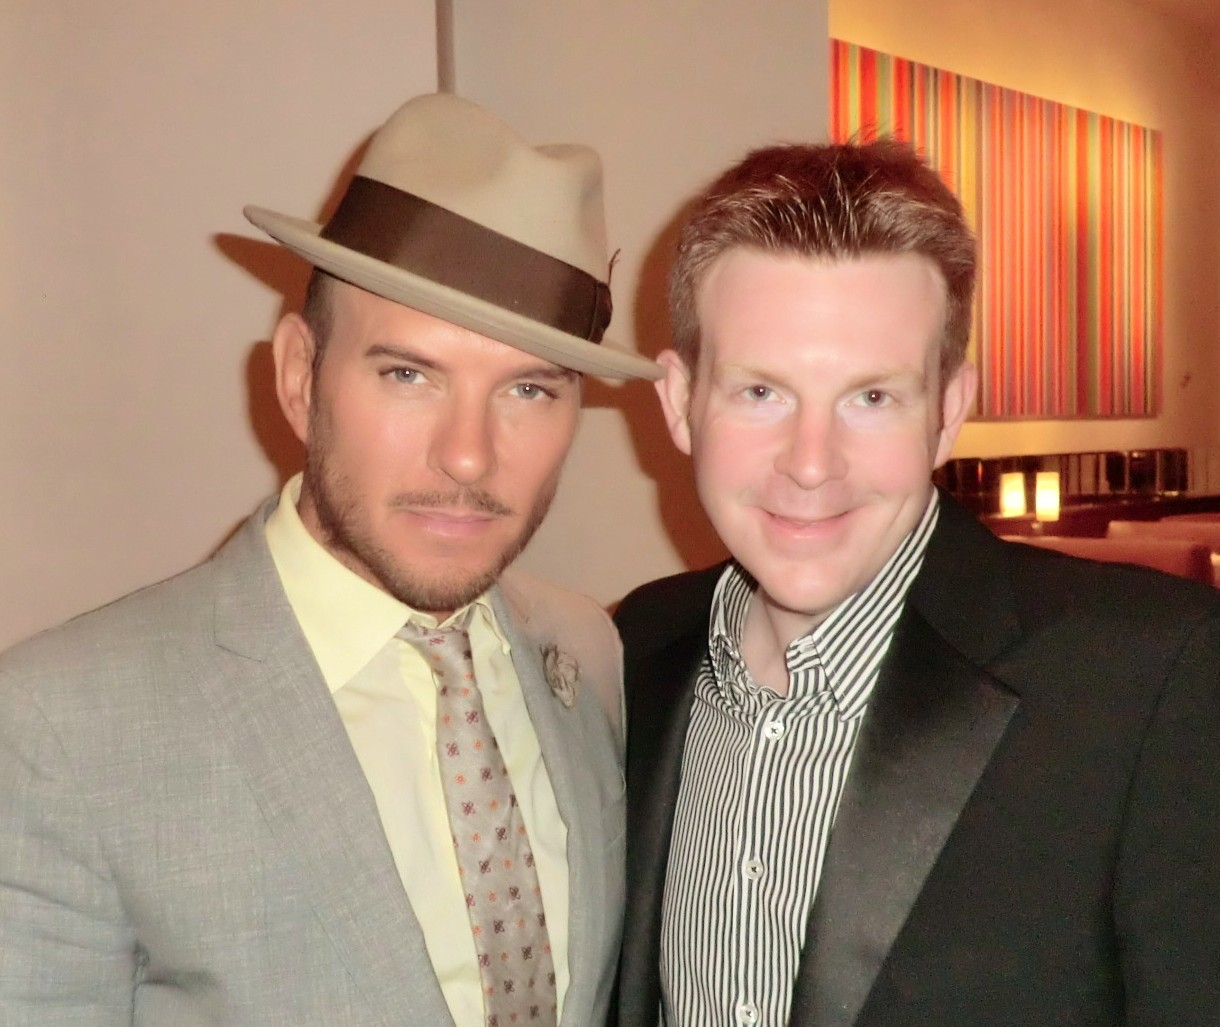 Enjoy an Exclusive 45 minute interview with Matt Goss. Recorded at Caesars Palace Las Vegas! Matt Goss was described by the British Sun Newspaper as the […]